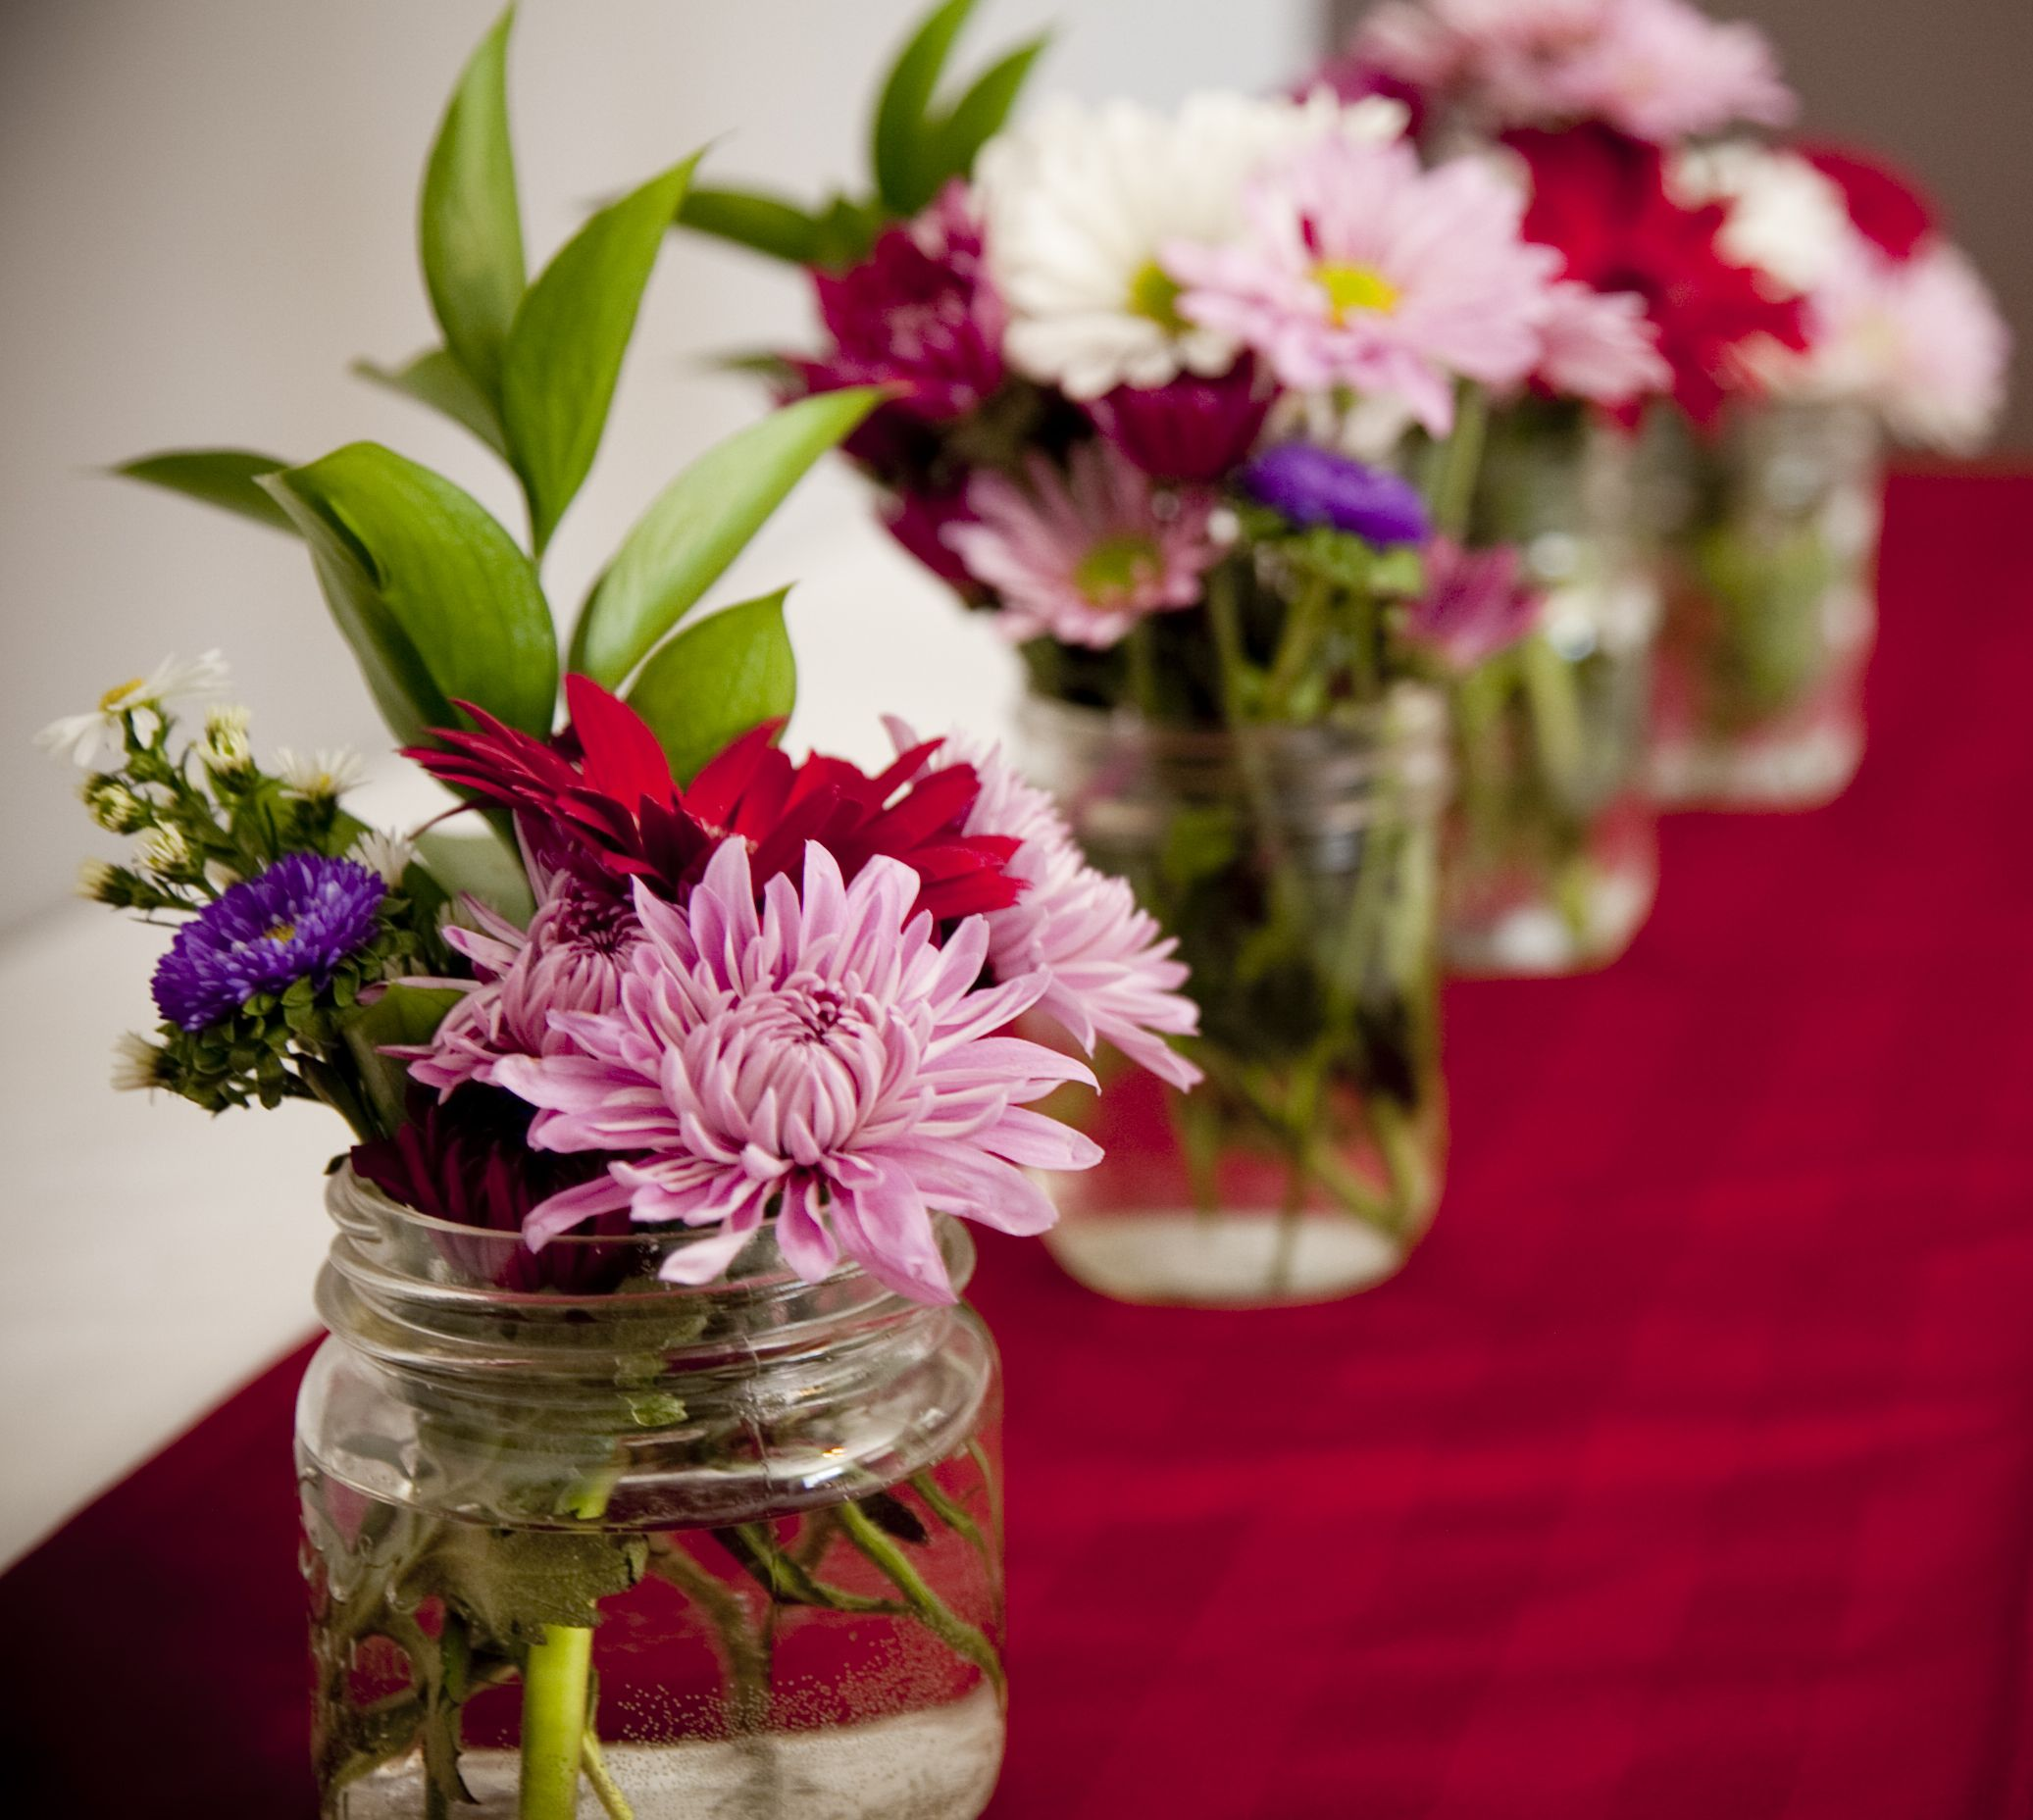 Cheap fresh flowers and reusable mason jars make for a great table cheap fresh flowers and reusable mason jars make for a great table centerpiece very affordable izmirmasajfo